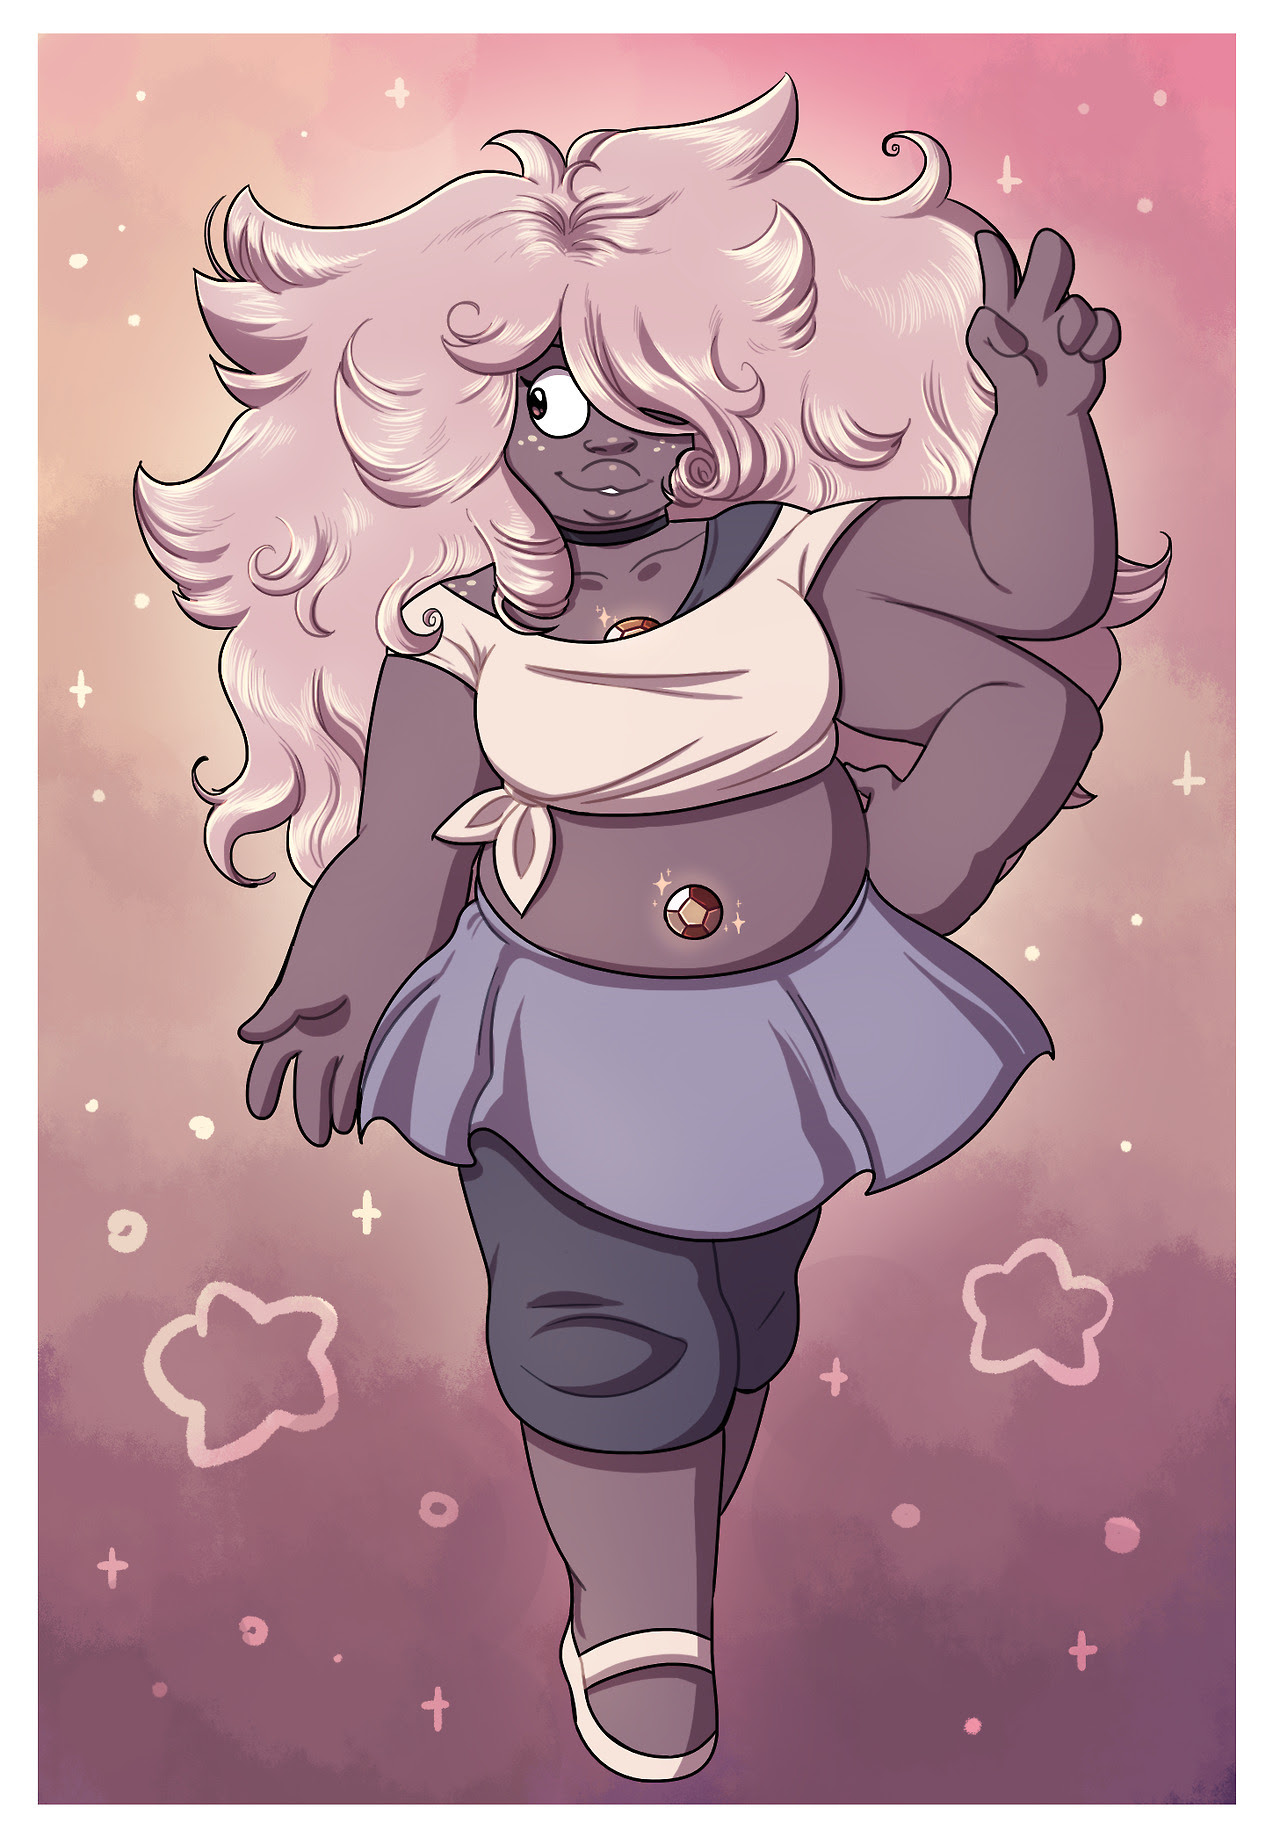 My idea of what an Amethyst/Rose fusion would look like, in other words the first Smoky Quartz!